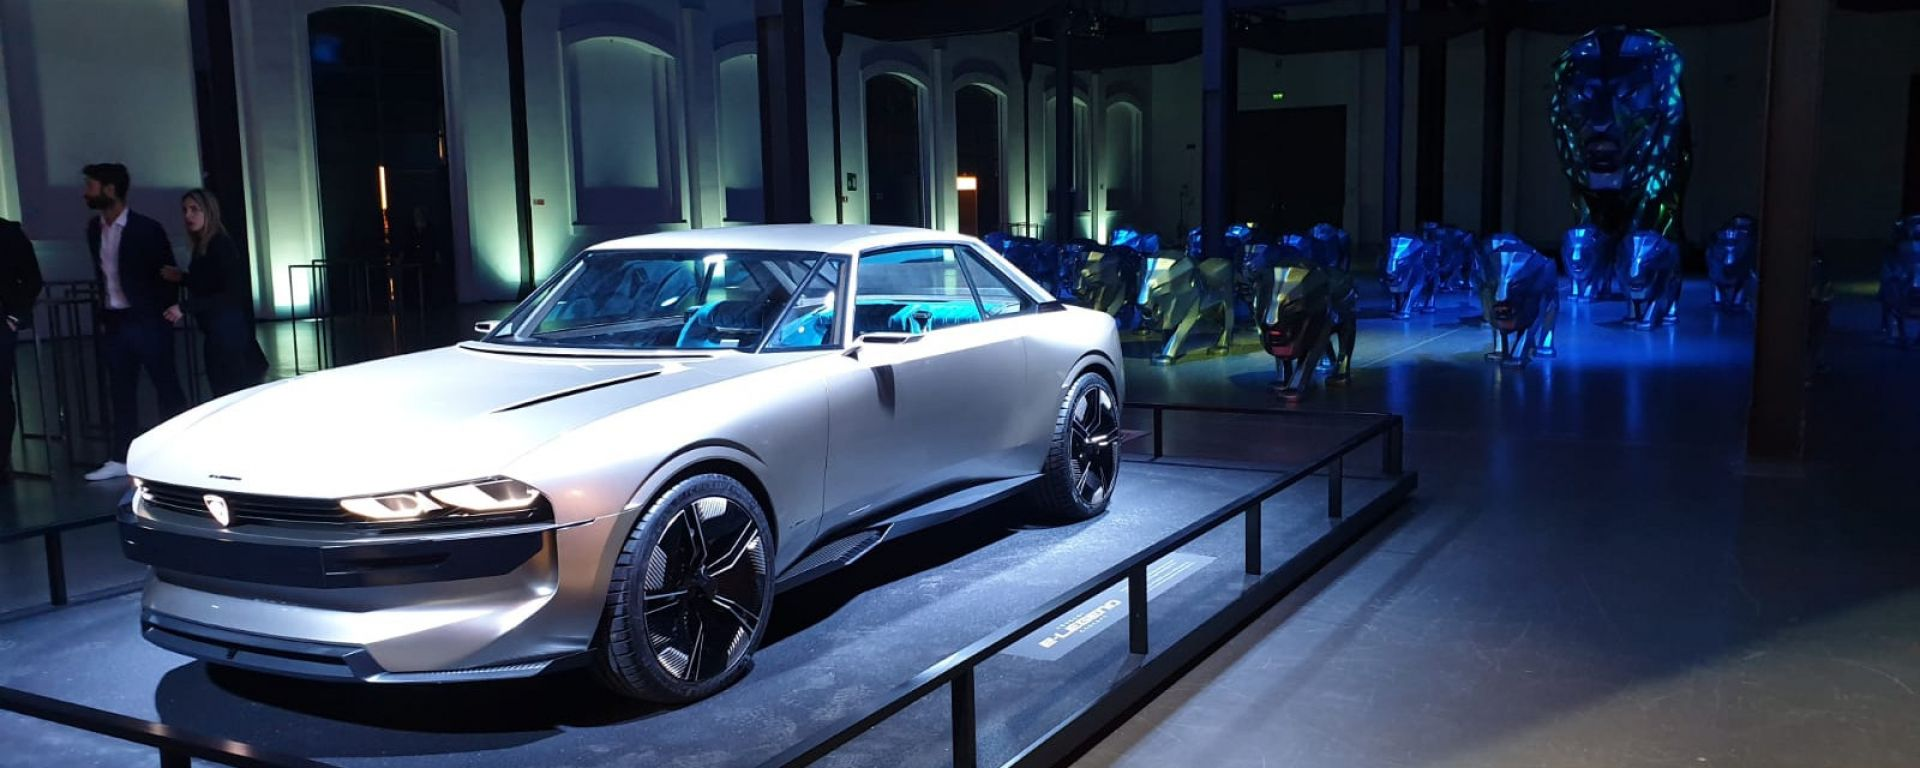 Milano Design Week: Peugeot e la mission #Unboringthefuture